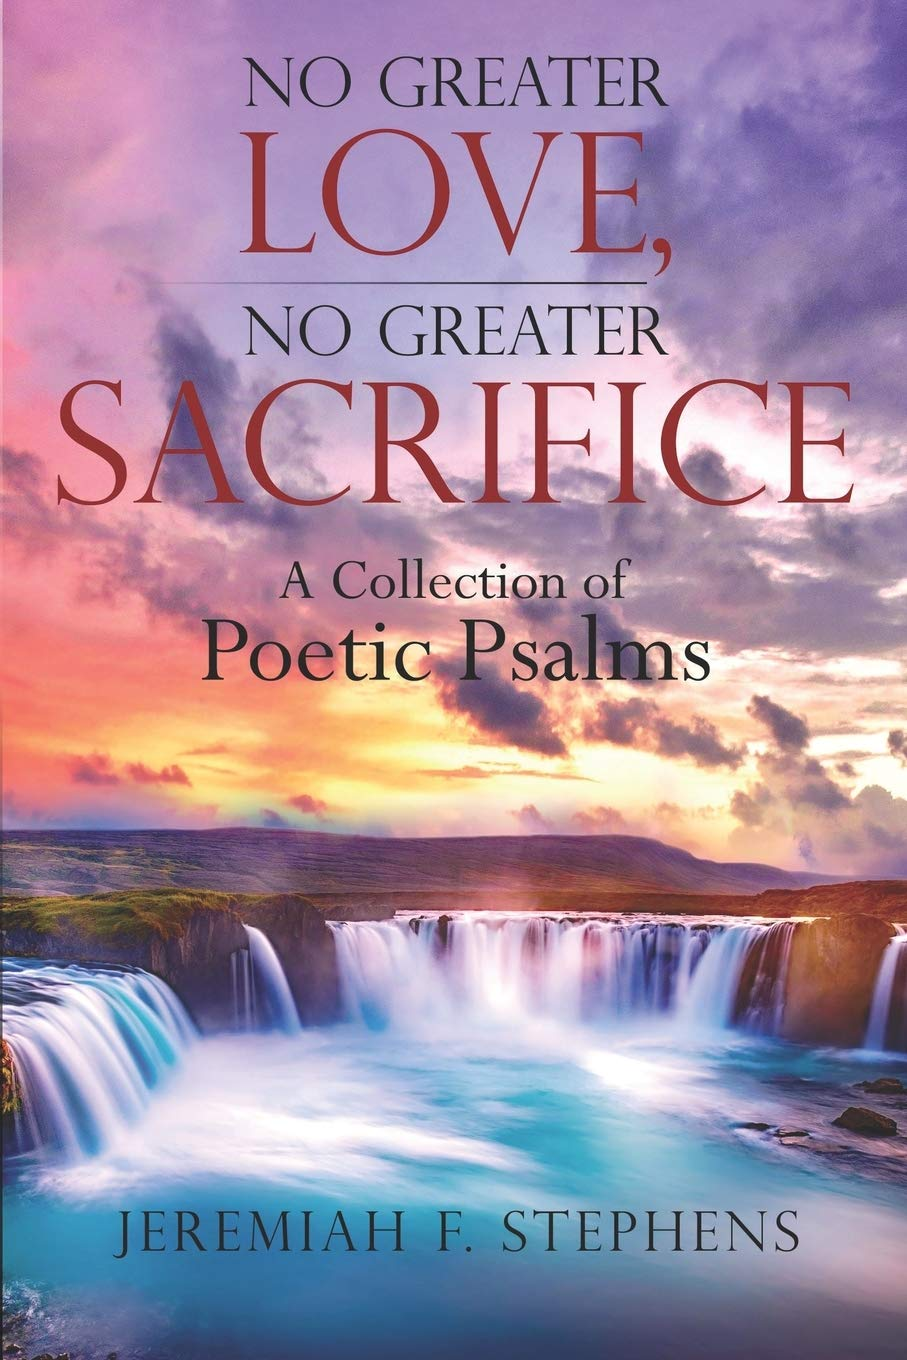 """Short Poetic Psalms to Overcome Daily Struggles, """"No Greater Love, No Greater Sacrifice"""" will Inspire Everyone"""